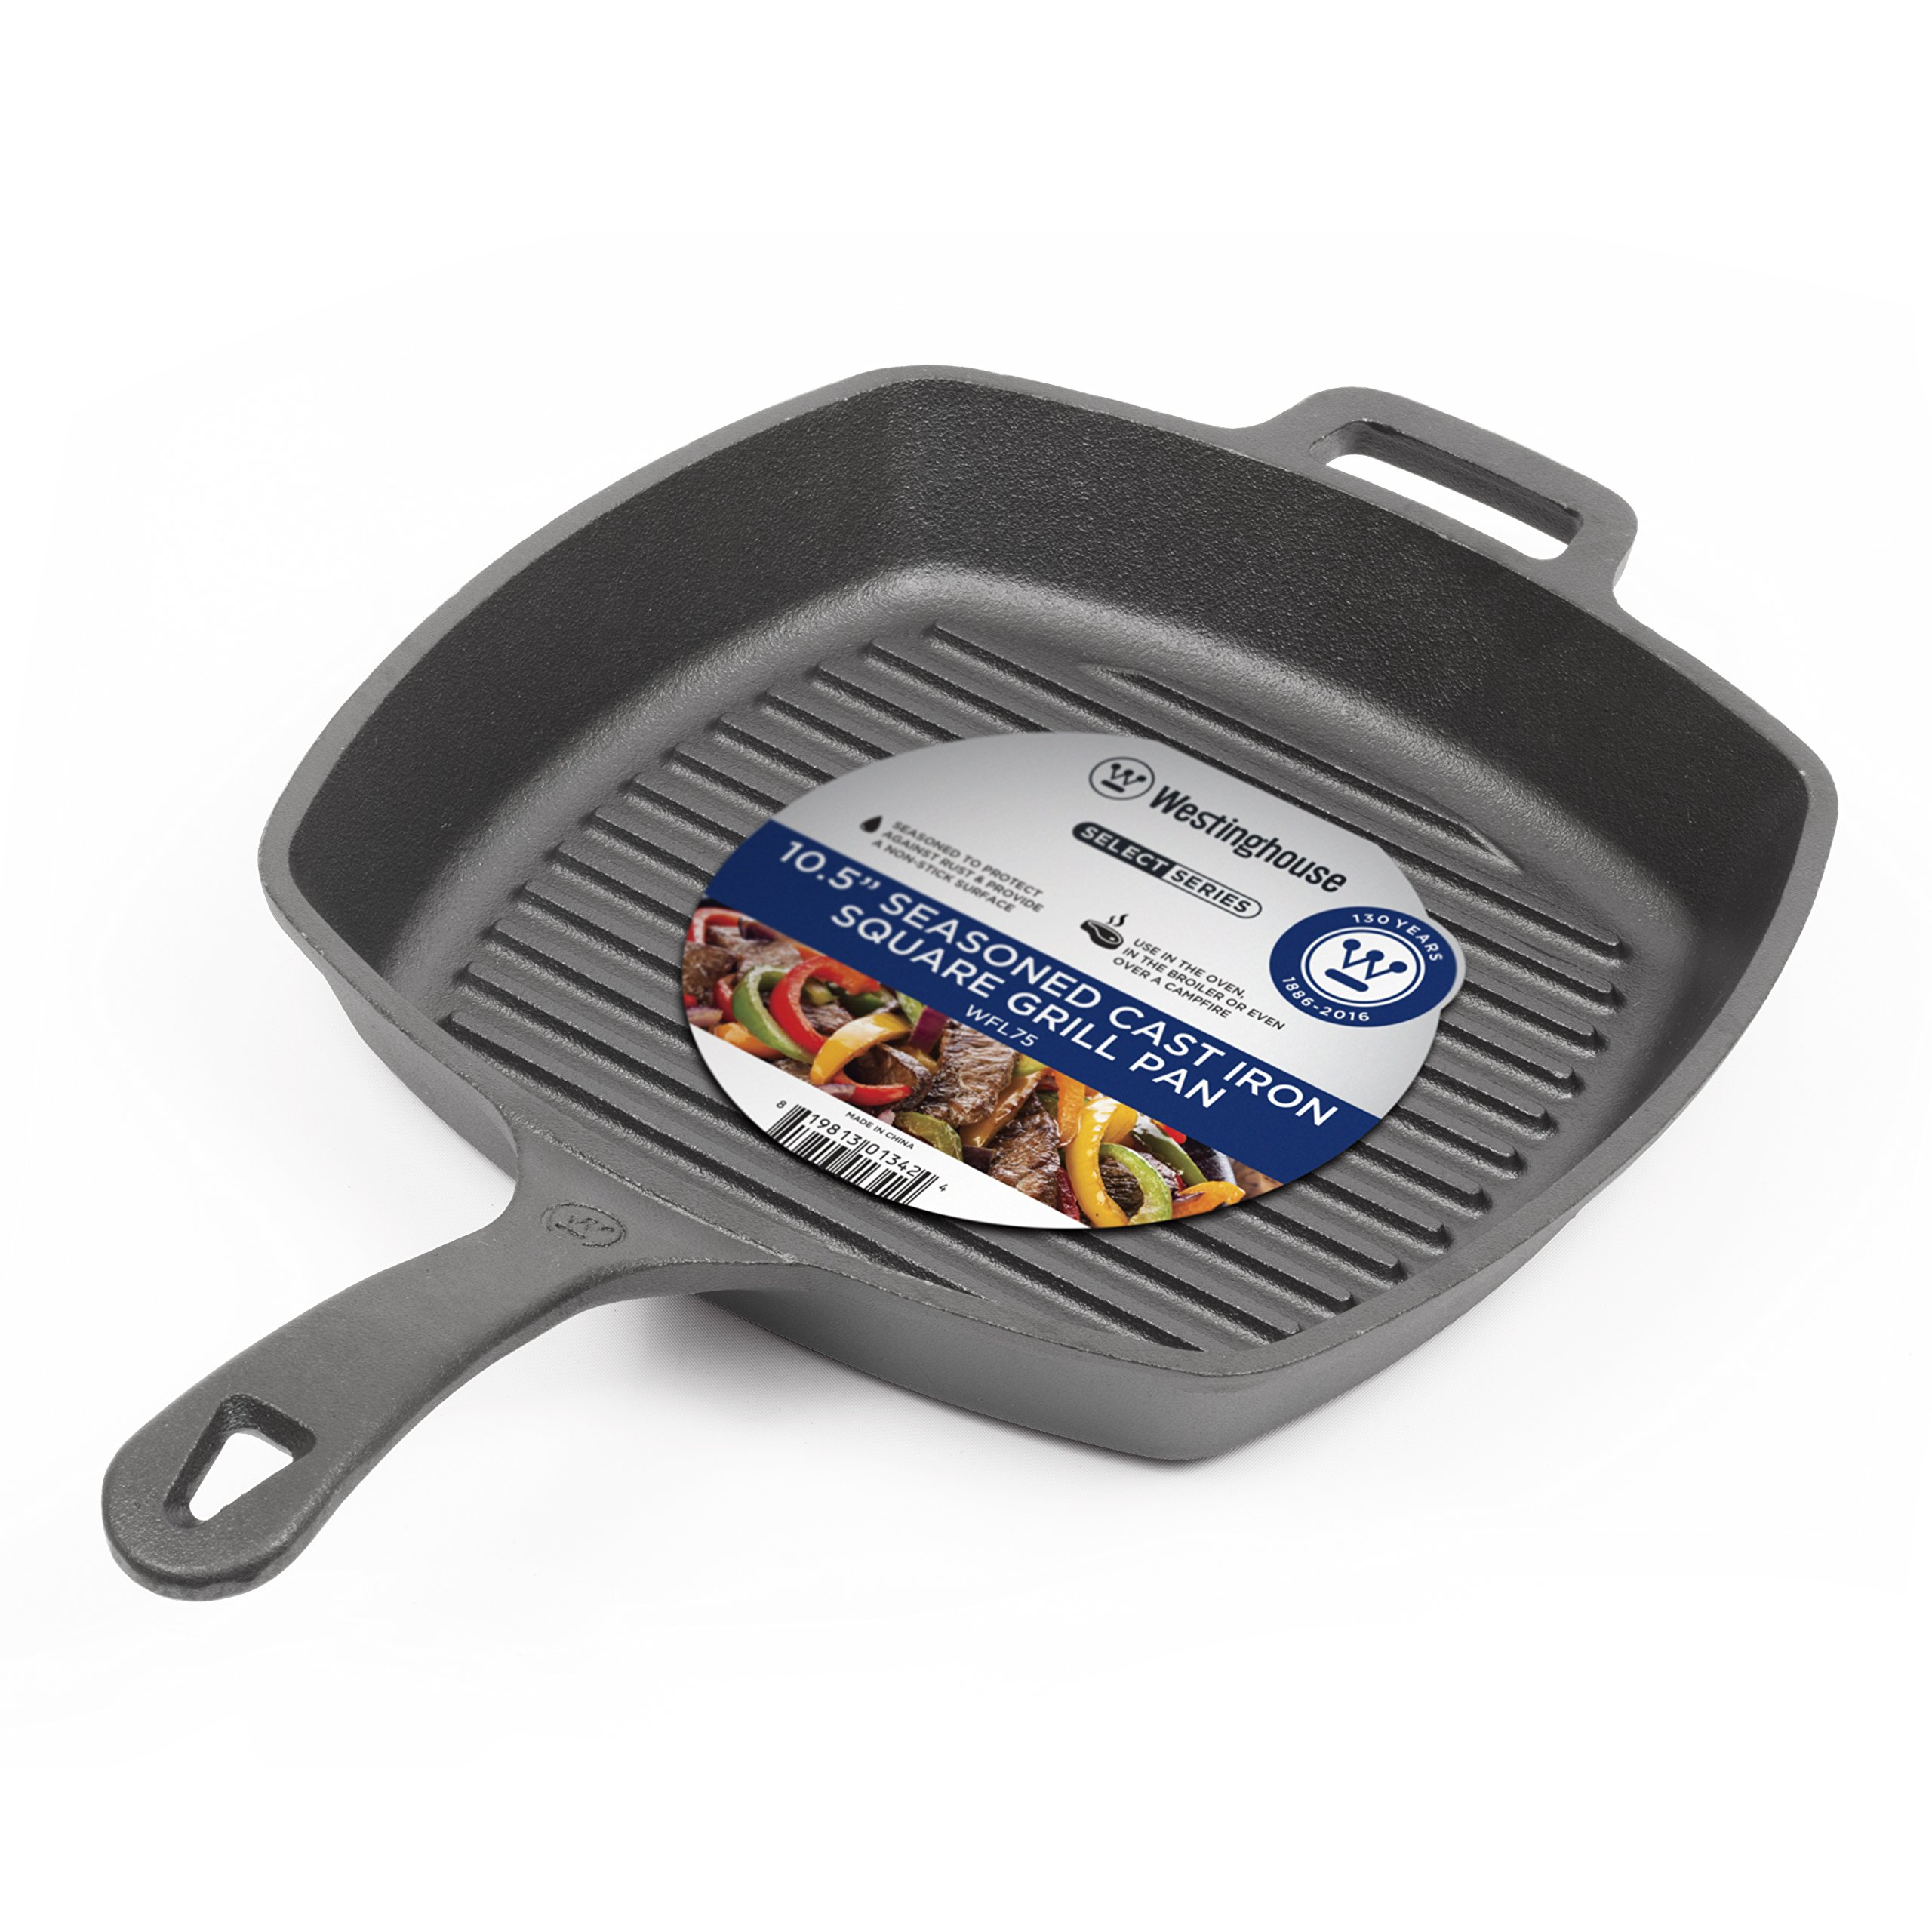 Westinghouse WFL75 Select Series Seasoned Cast Iron 10 1/2 Inch Square Grill Pan